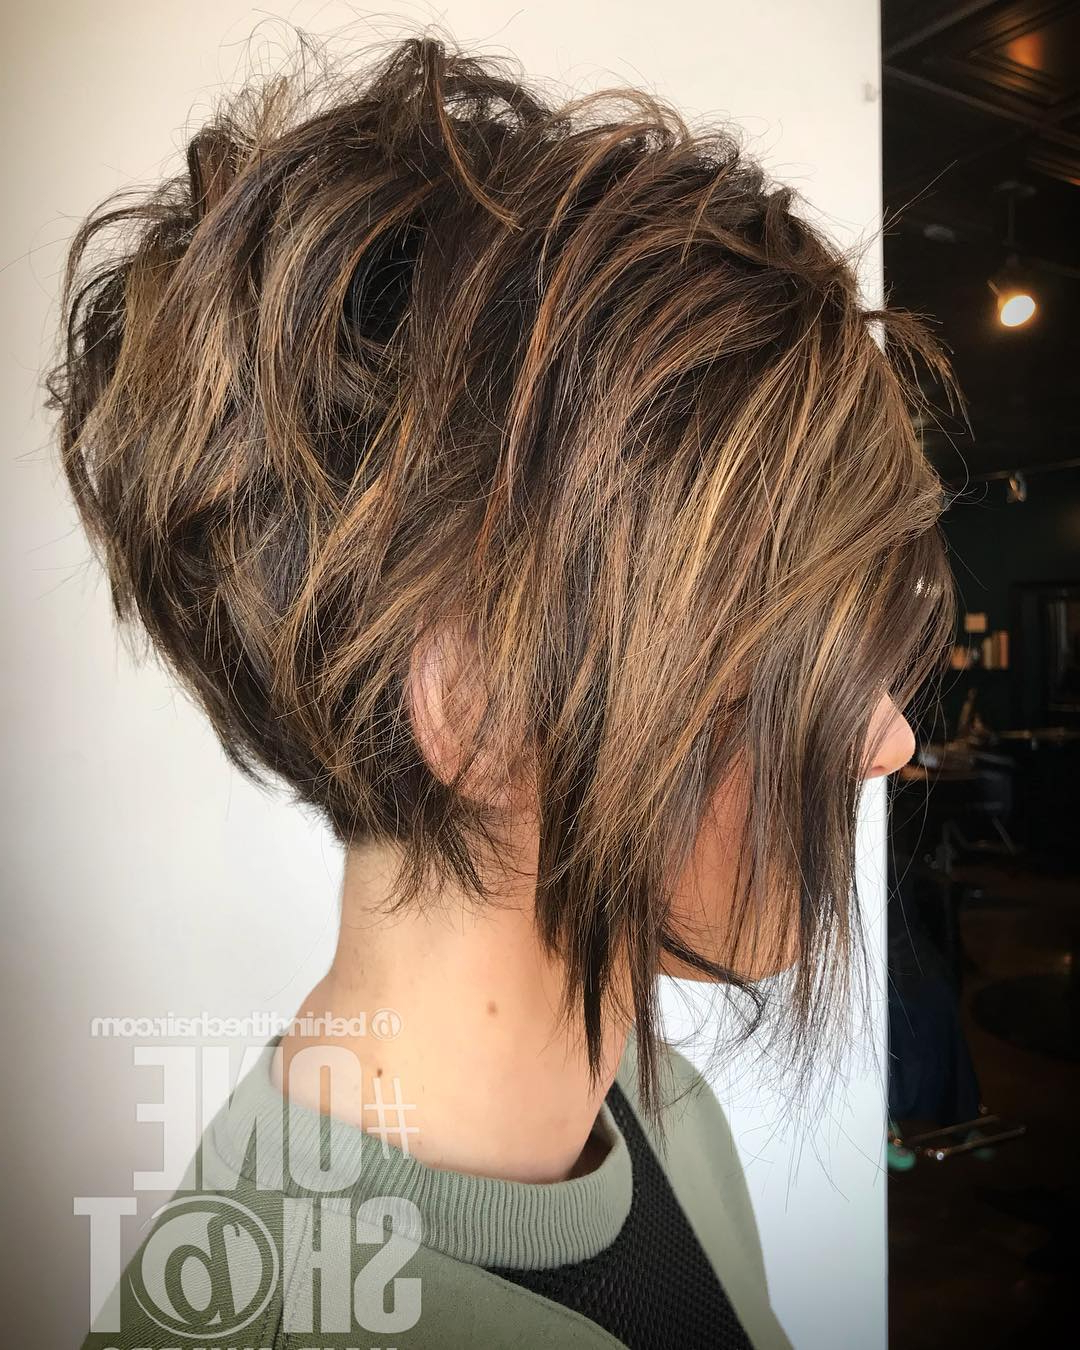 10 Trendy Messy Bob Hairstyles And Haircuts, 2020 Female With Highlighted Short Bob Haircuts (View 2 of 20)